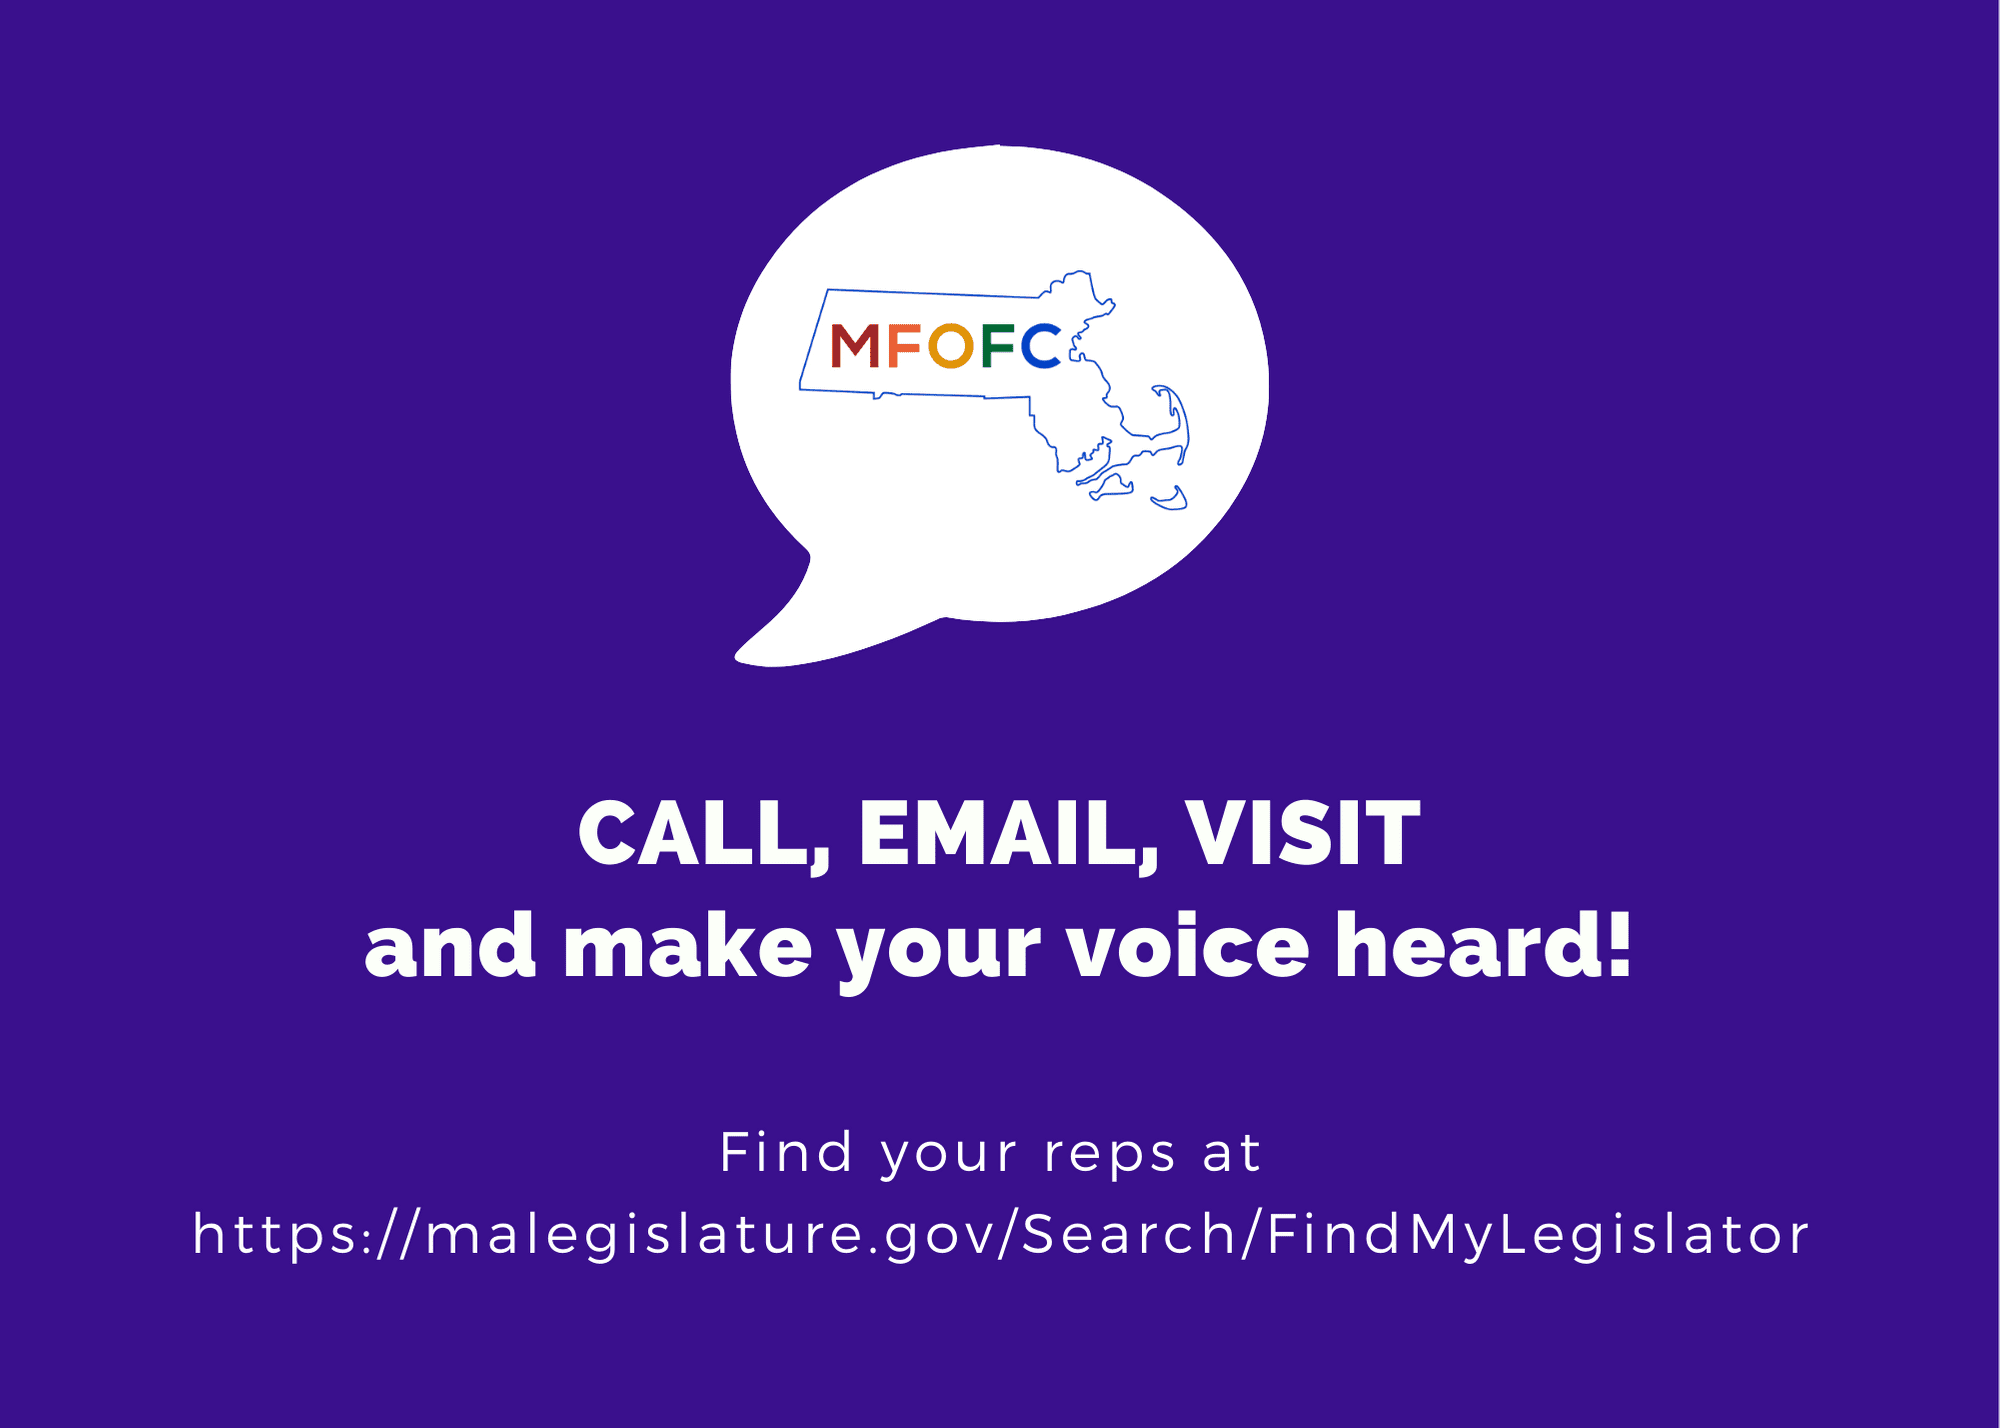 CALL, EMAIL, VISIT and make your voice heard!